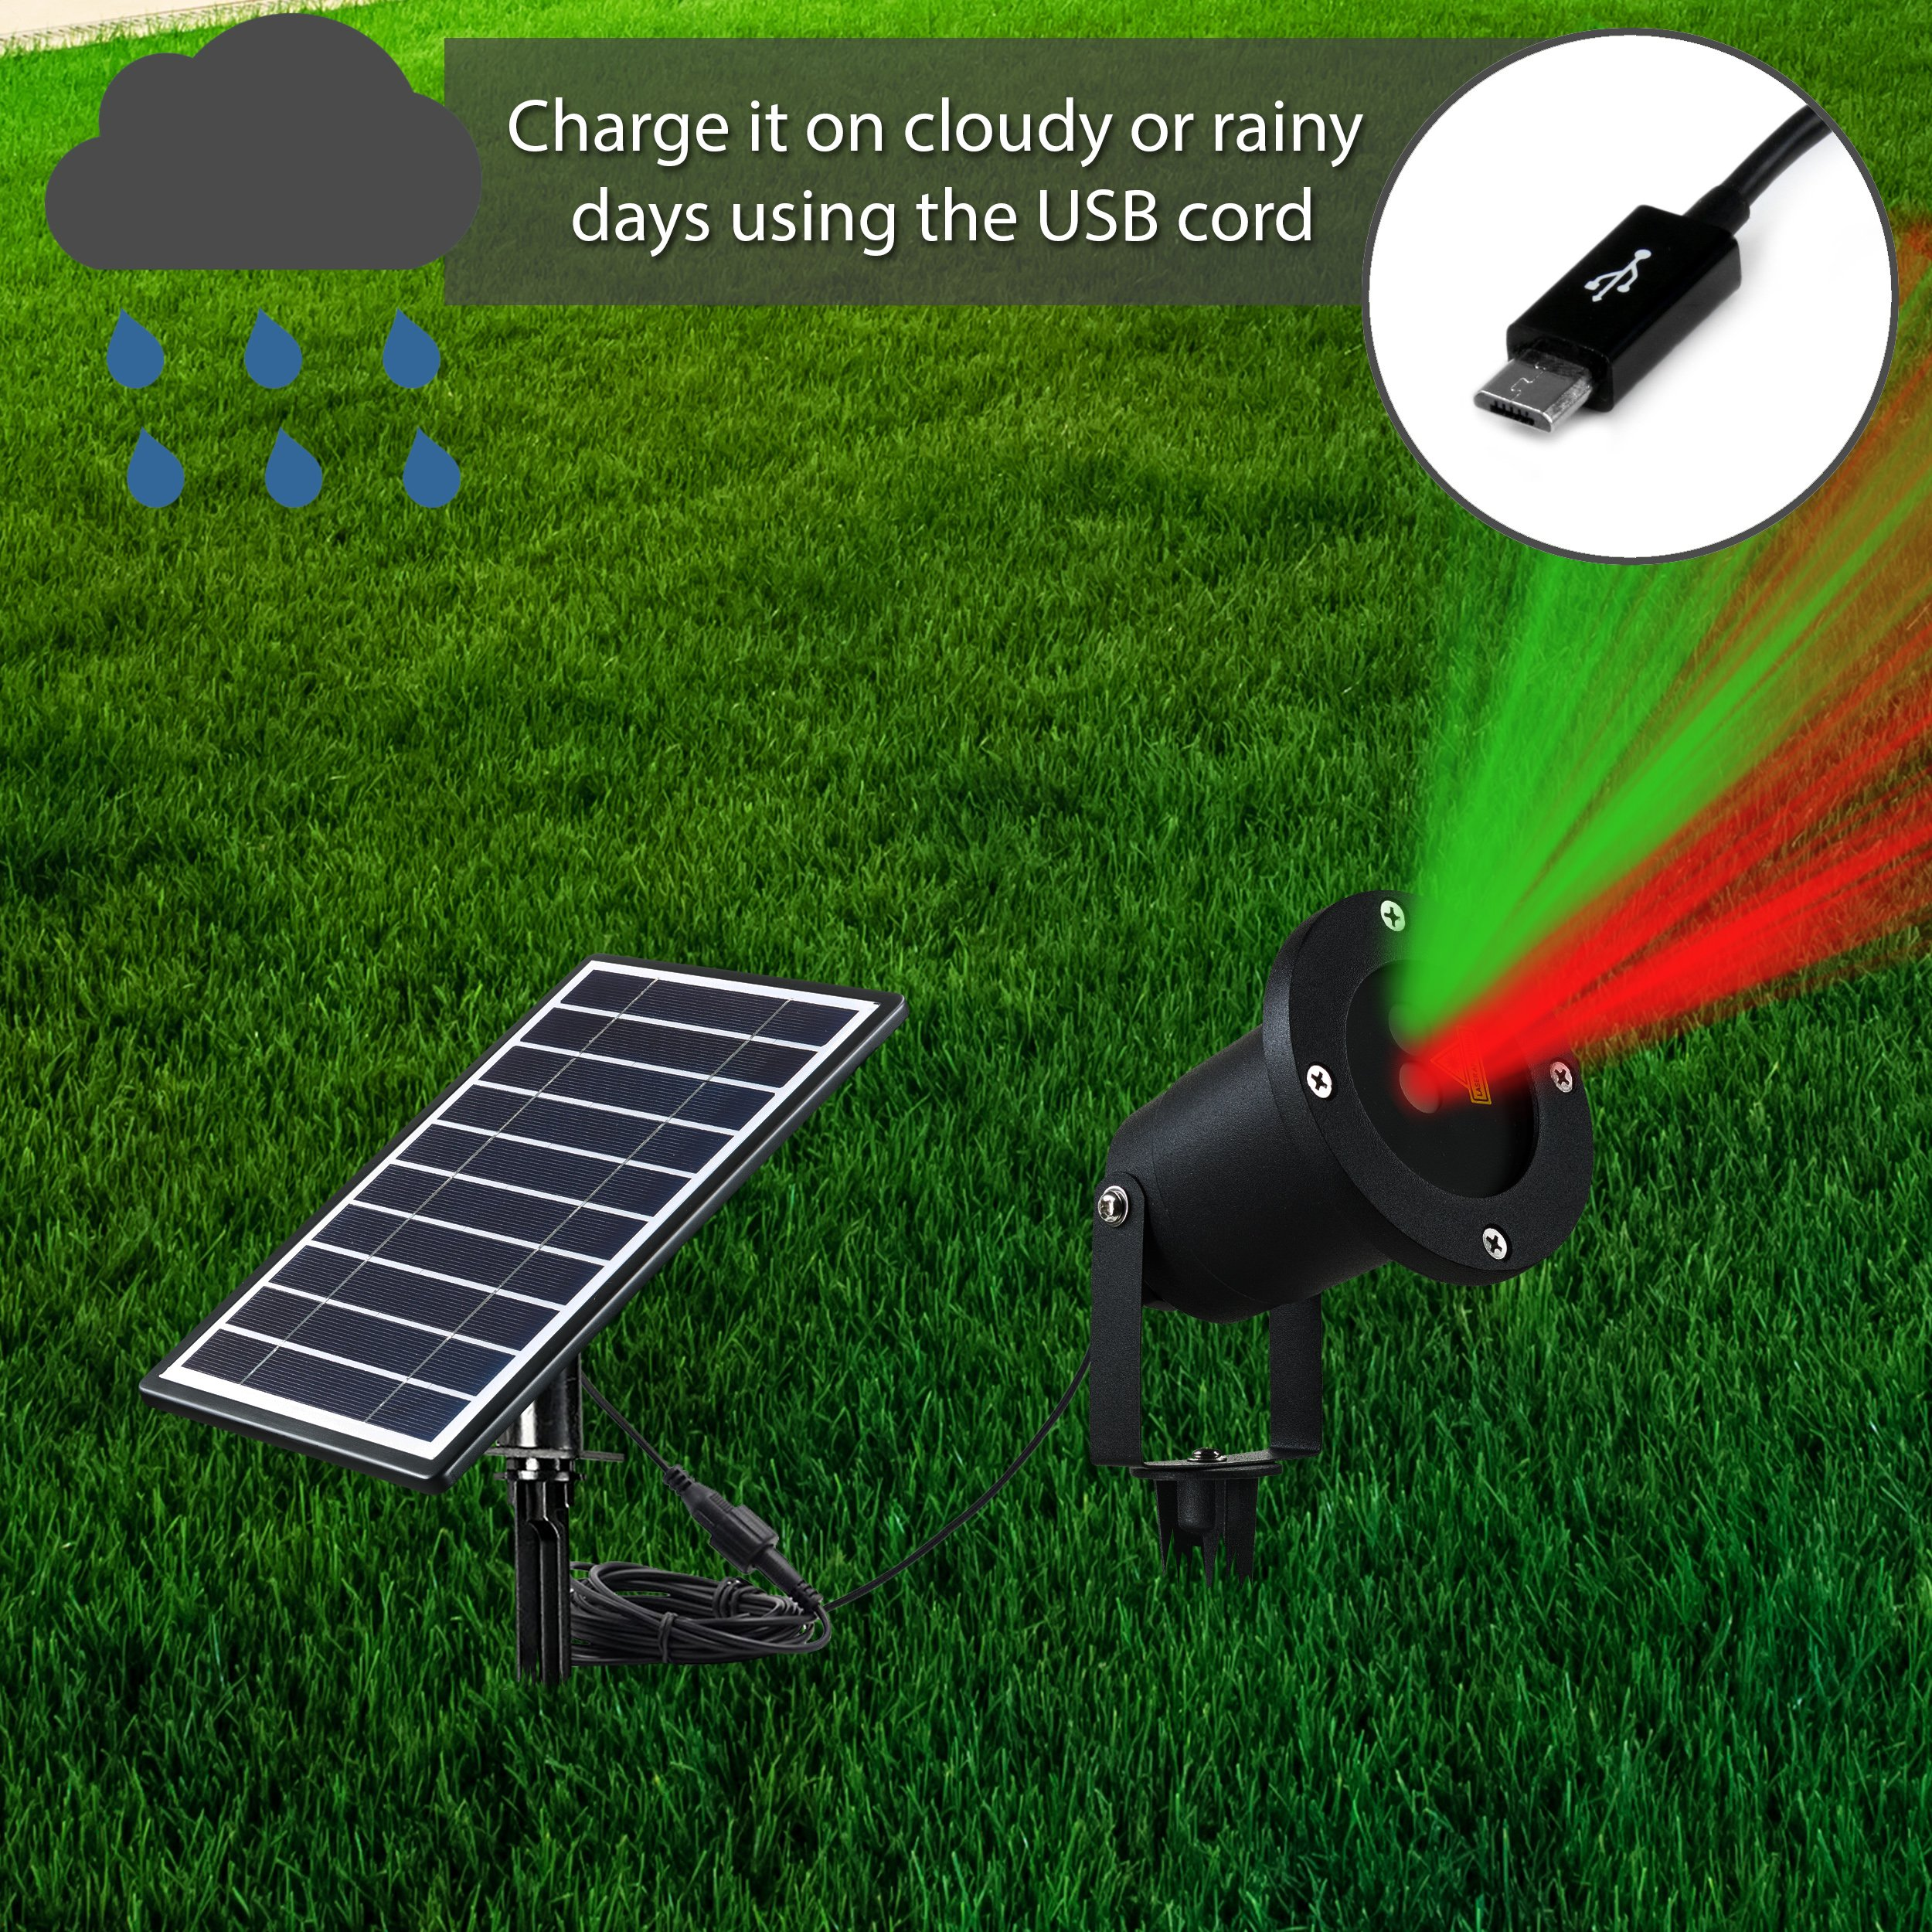 Solario Solar Powered Laser Light Projector w/All-Metal Aluminum Design | Extra-Bright LED Stake Lights | 100% Weather Resistant Outdoor Christmas Lights (Red & Green) (3 Patterns) by Solario (Image #3)